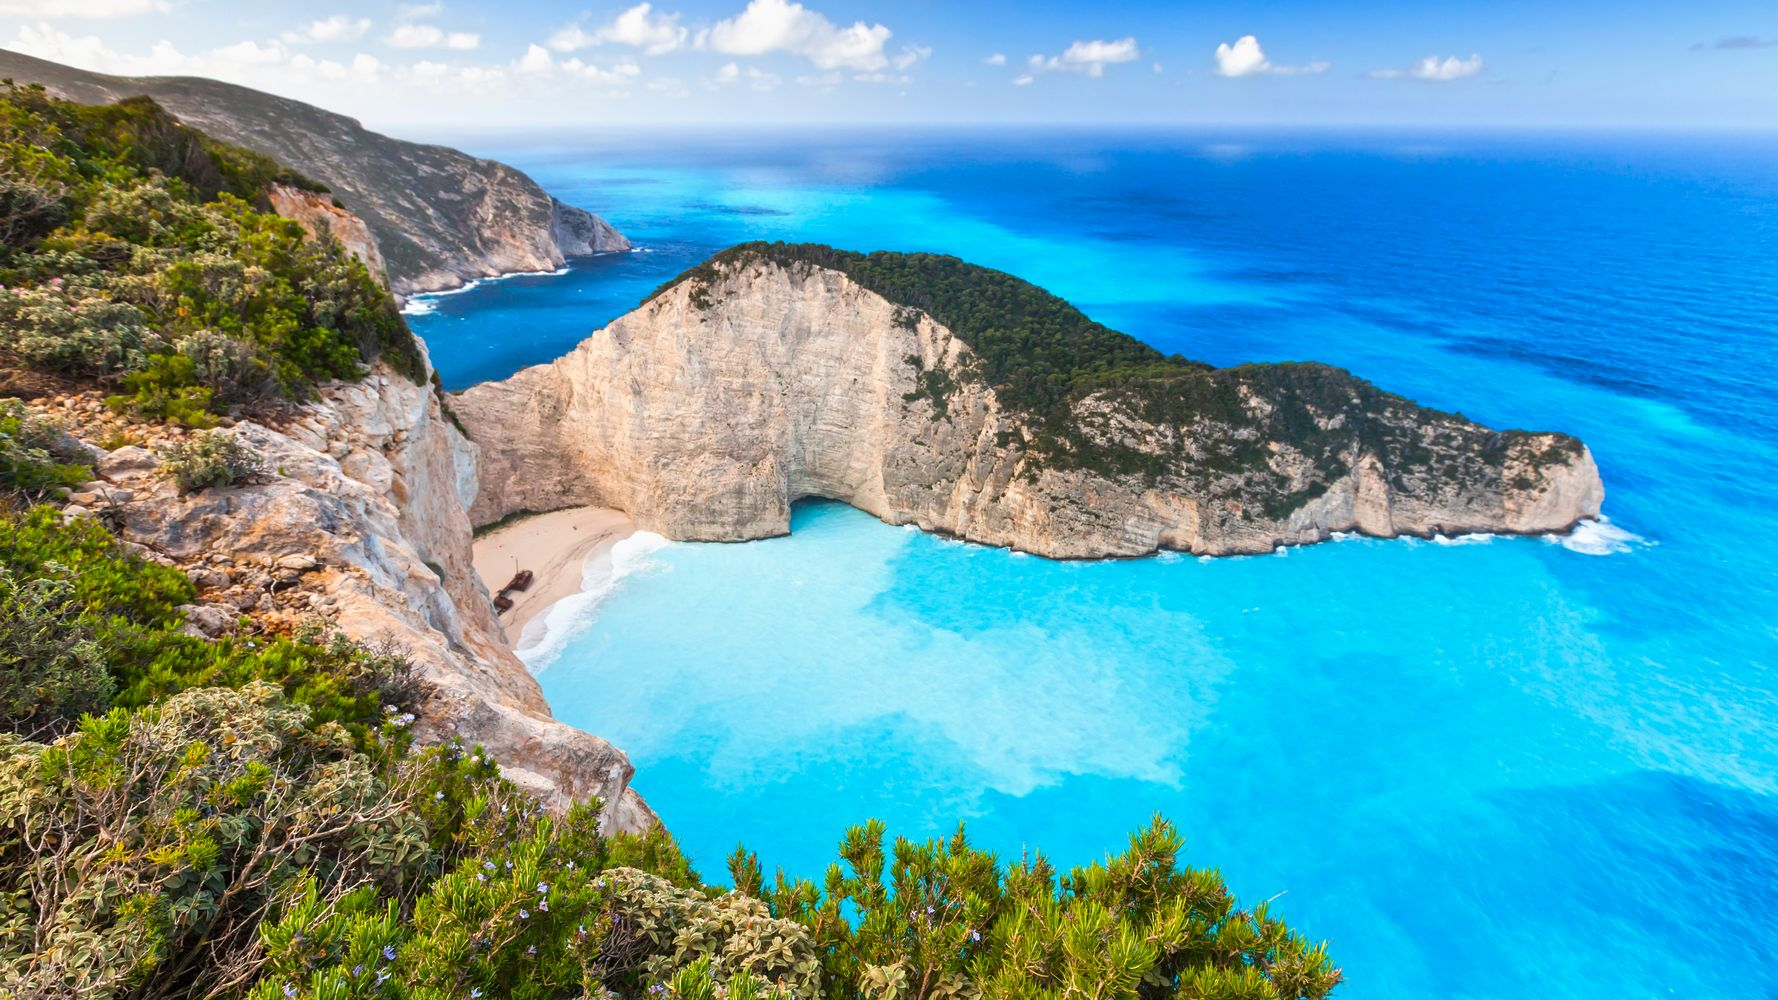 18 Incredible Beaches You've Never Heard Of, But Need To Know